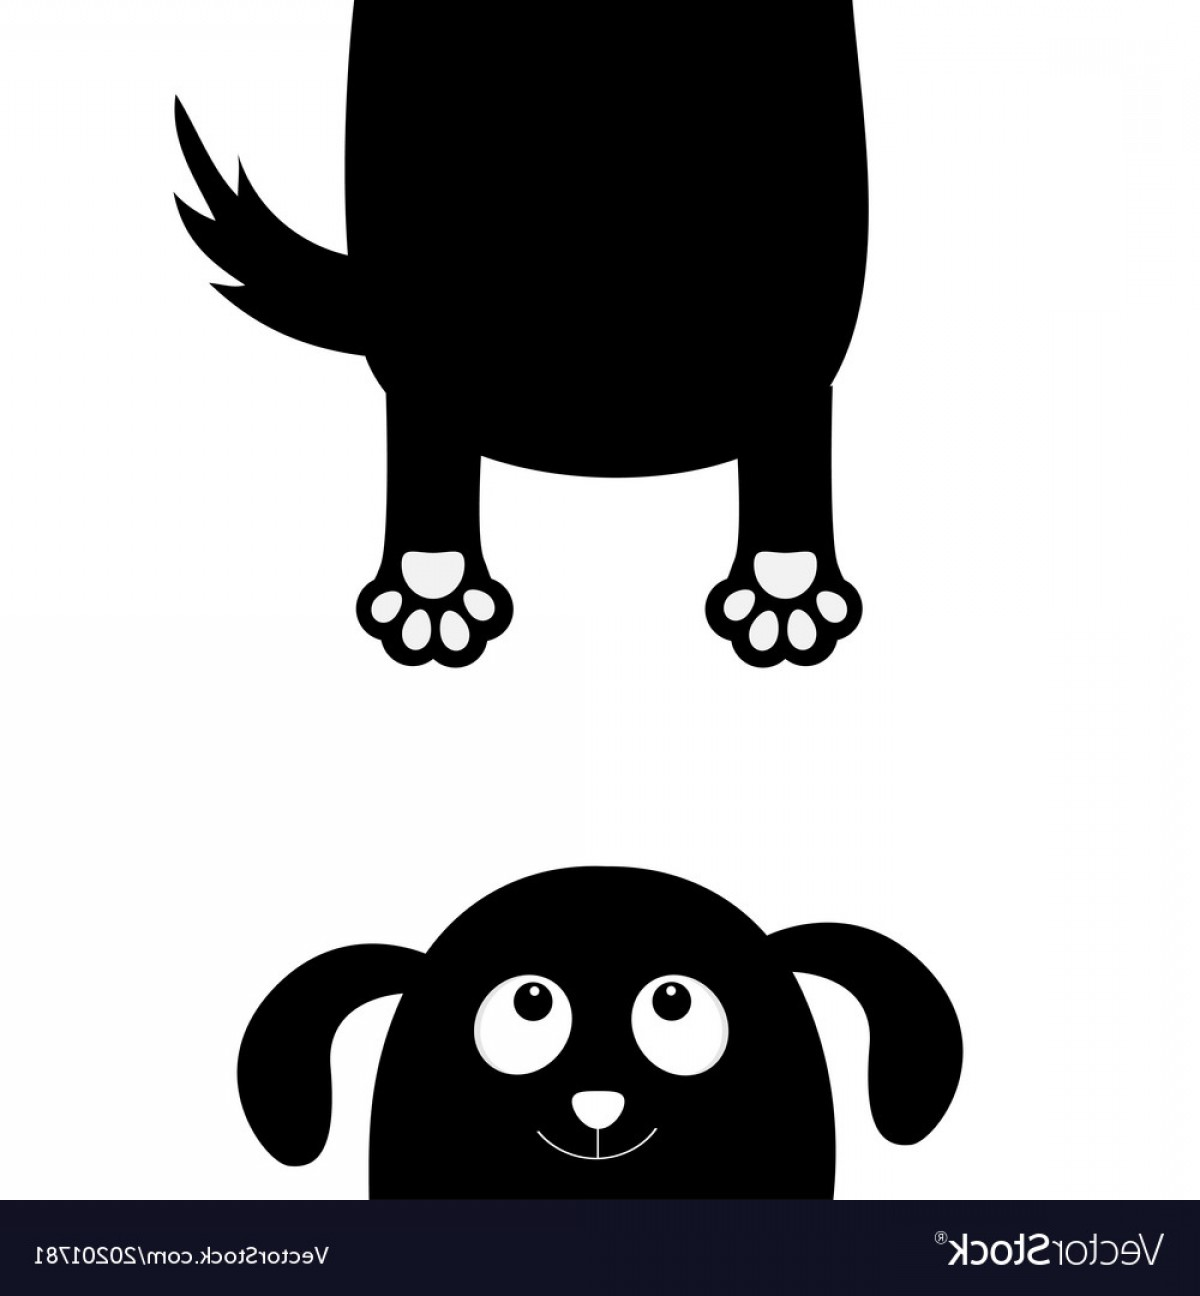 Holding Hands Up Silhouette Vector: Dog Puppy Face Black Silhouette Holding Hands Up Vector